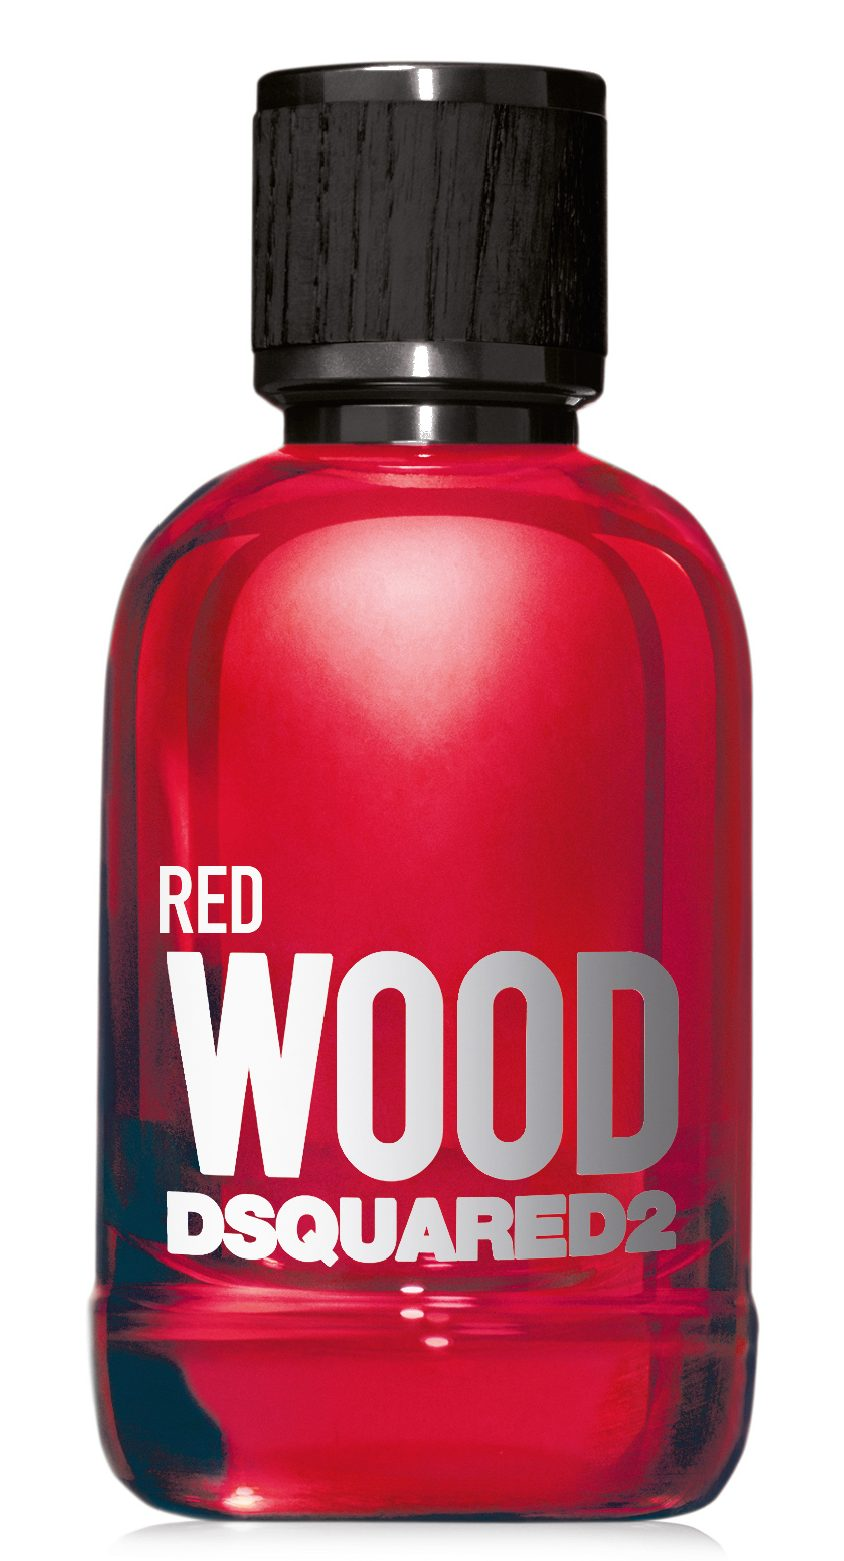 DSQUARD2_RED_WOOD